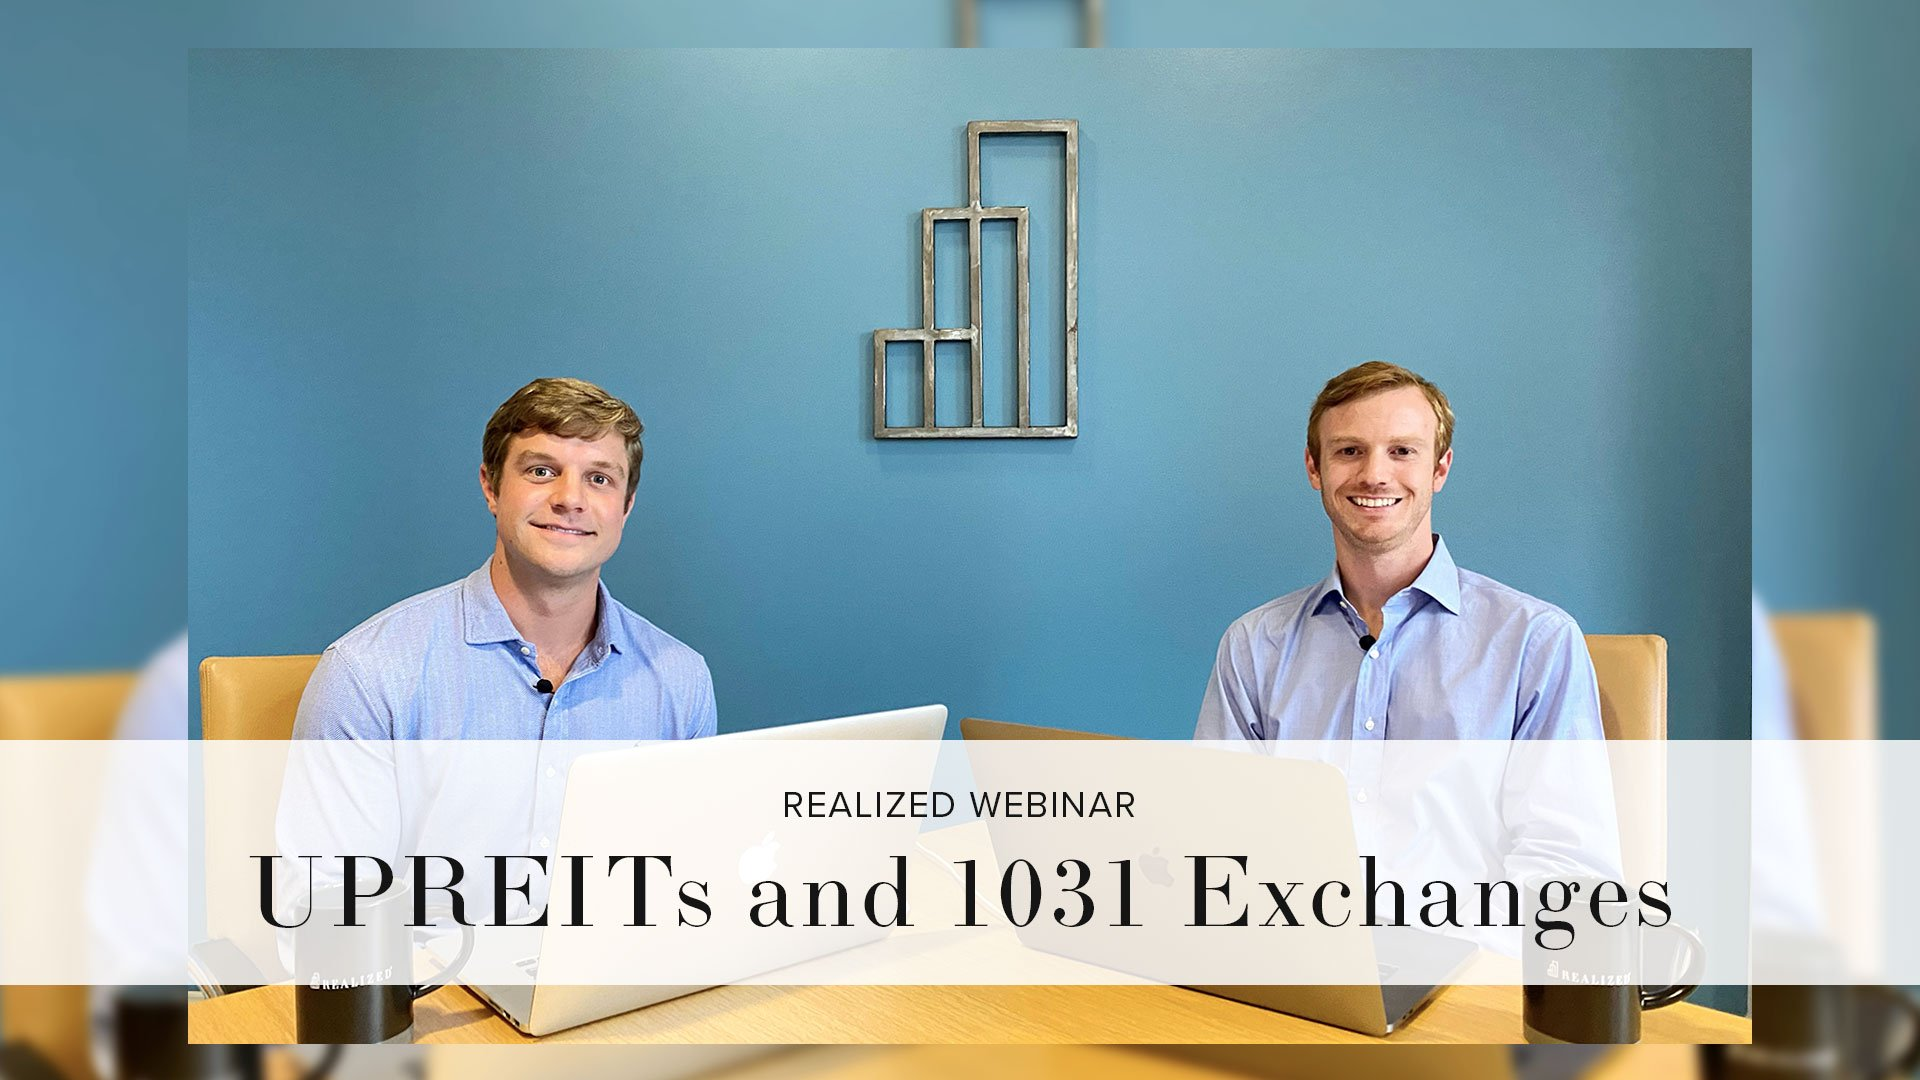 UPREITs - An Alternative Investment Solution